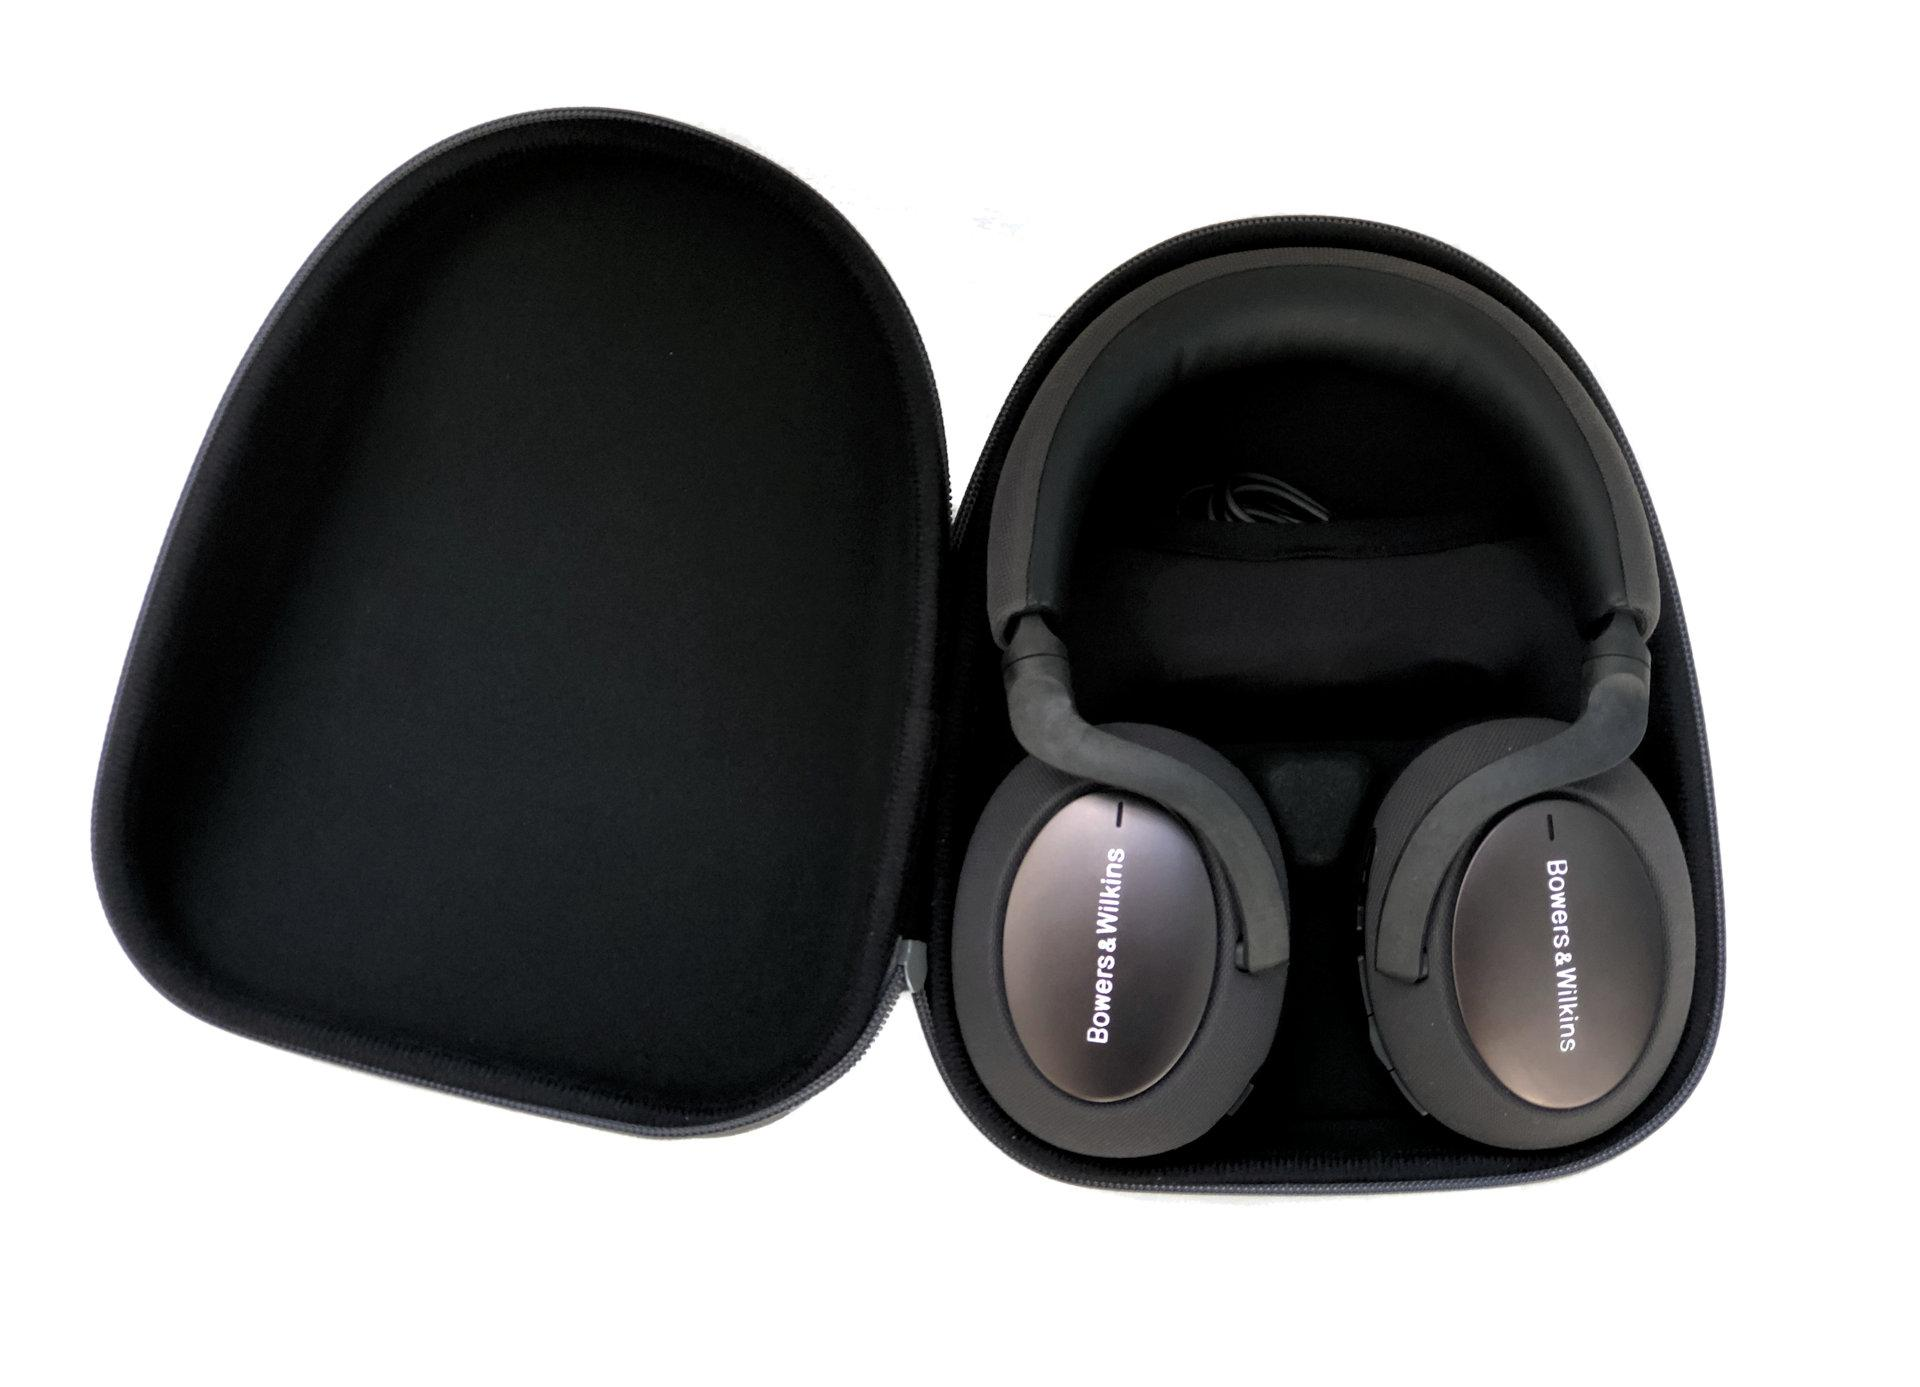 https://hometheaterreview.com/Bowers_WIlkins-PX7_folded_in_case.jpg